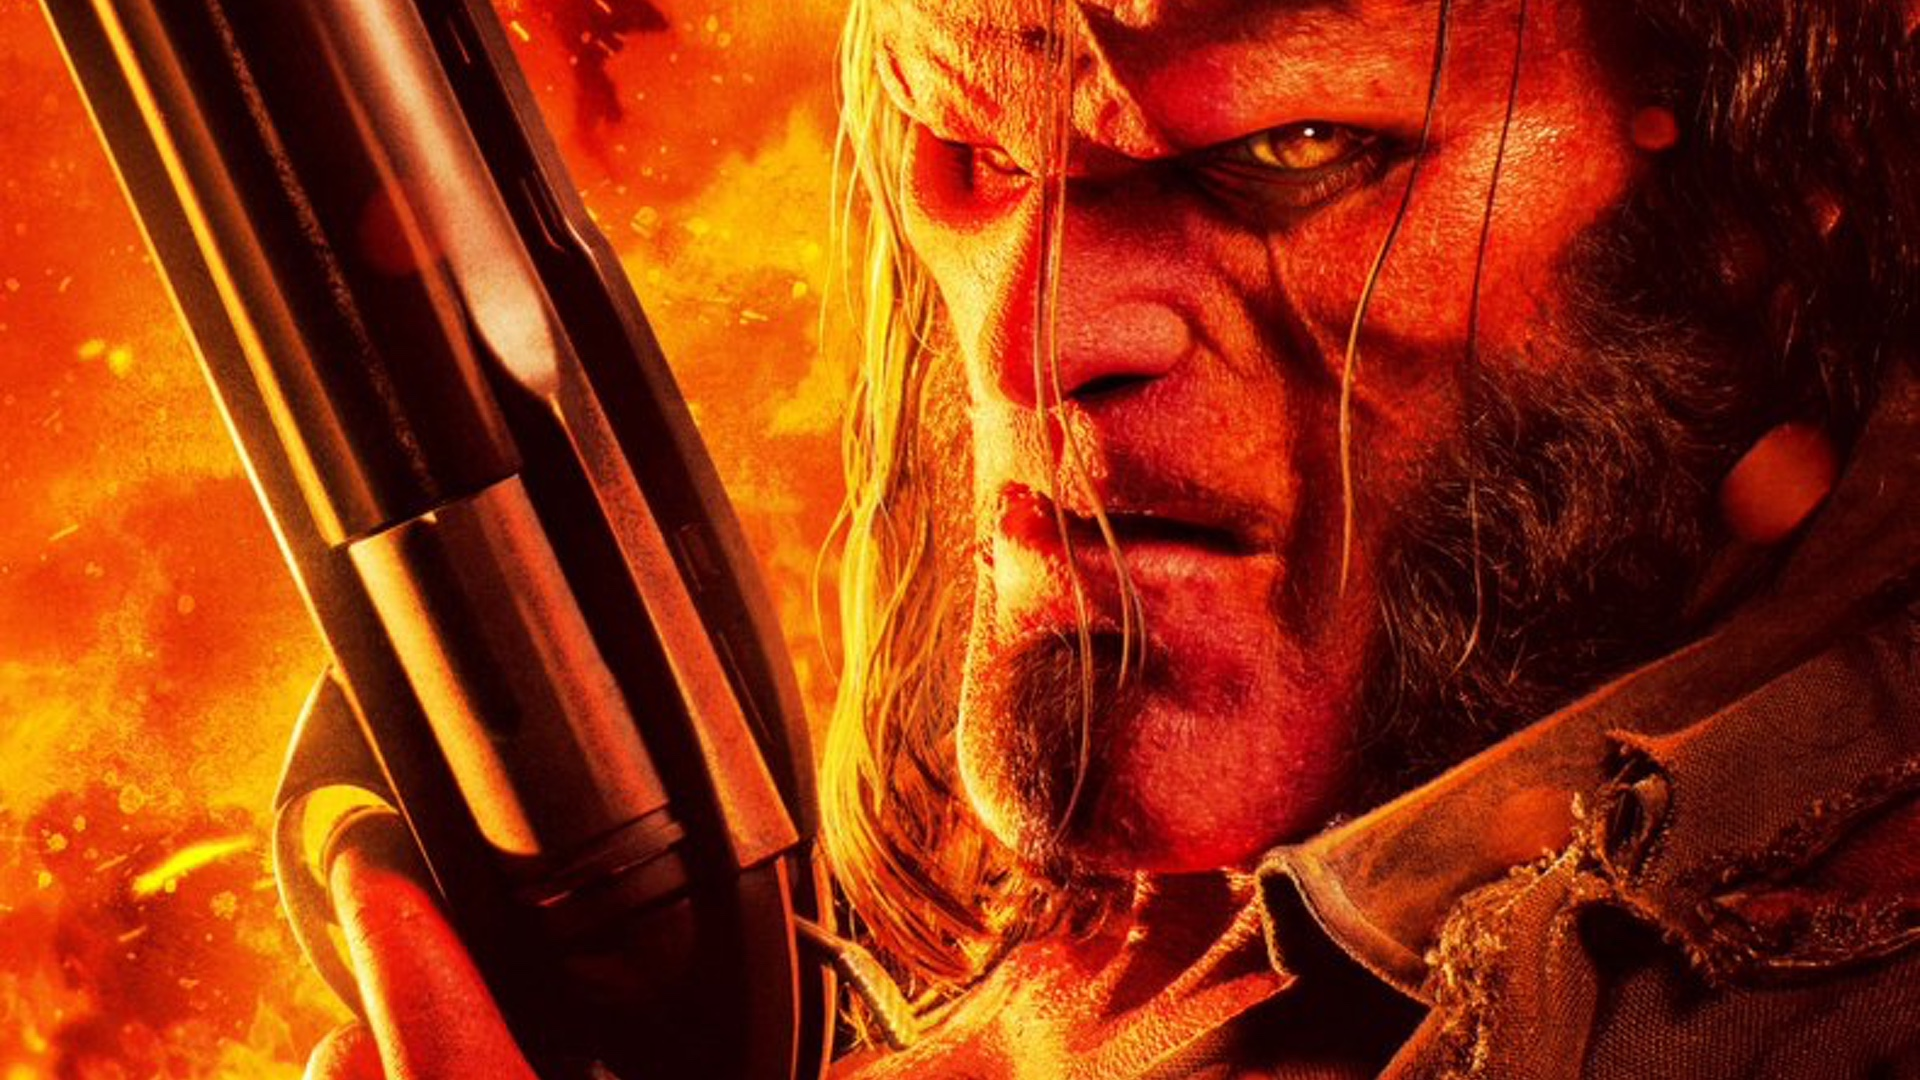 two-new-hellboy-posters-and-a-new-red-band-trailer-is-coming-tonight-social.jpg